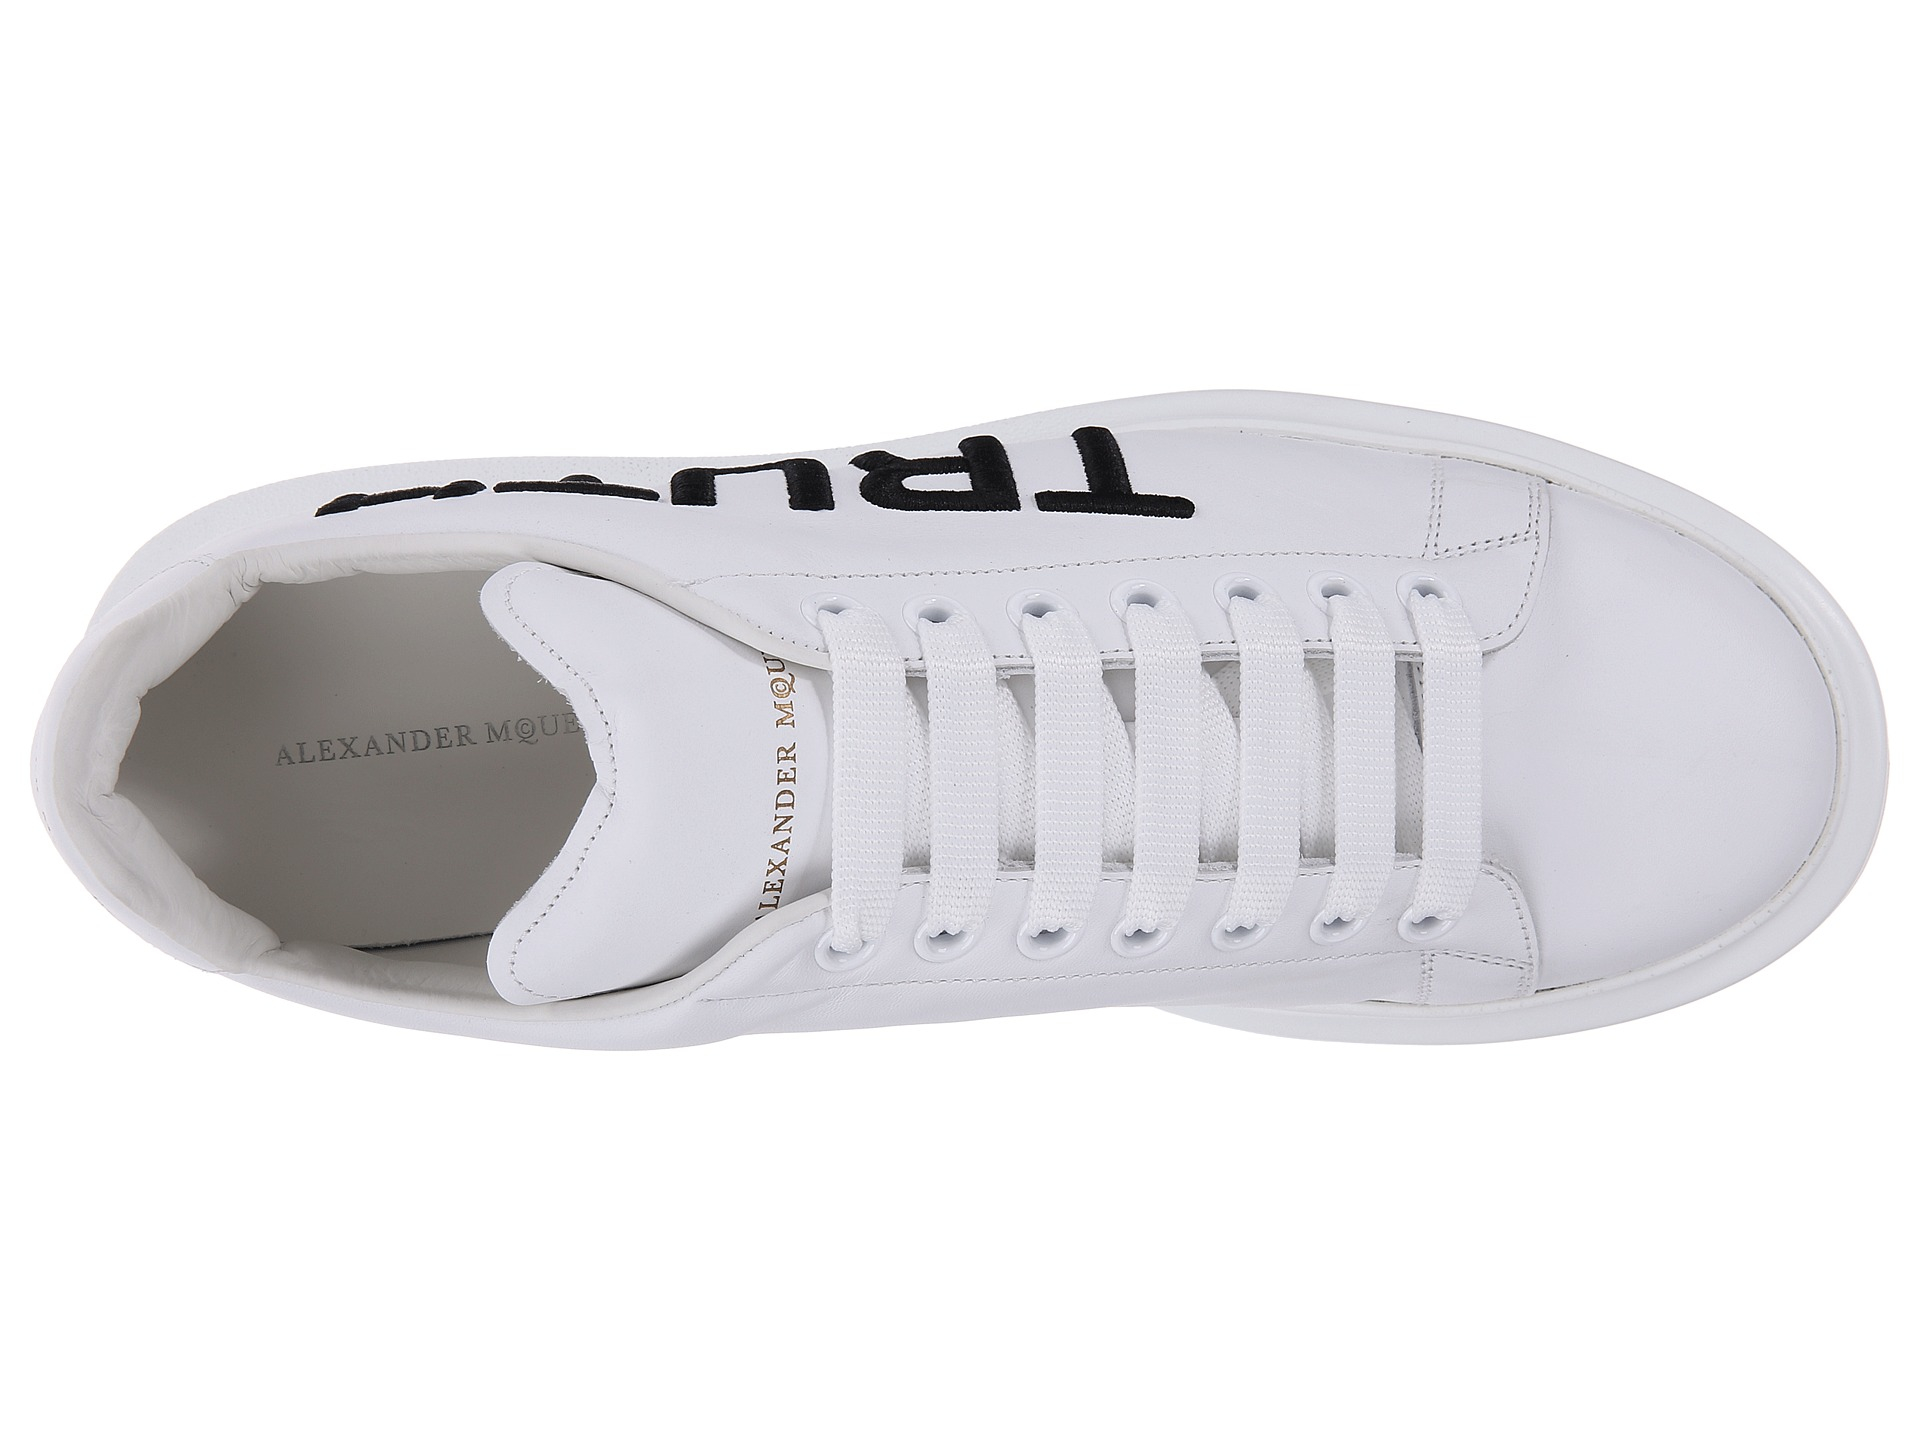 1a1d8a895da Lyst - Alexander McQueen Honor And Truth Sneaker in White for Men